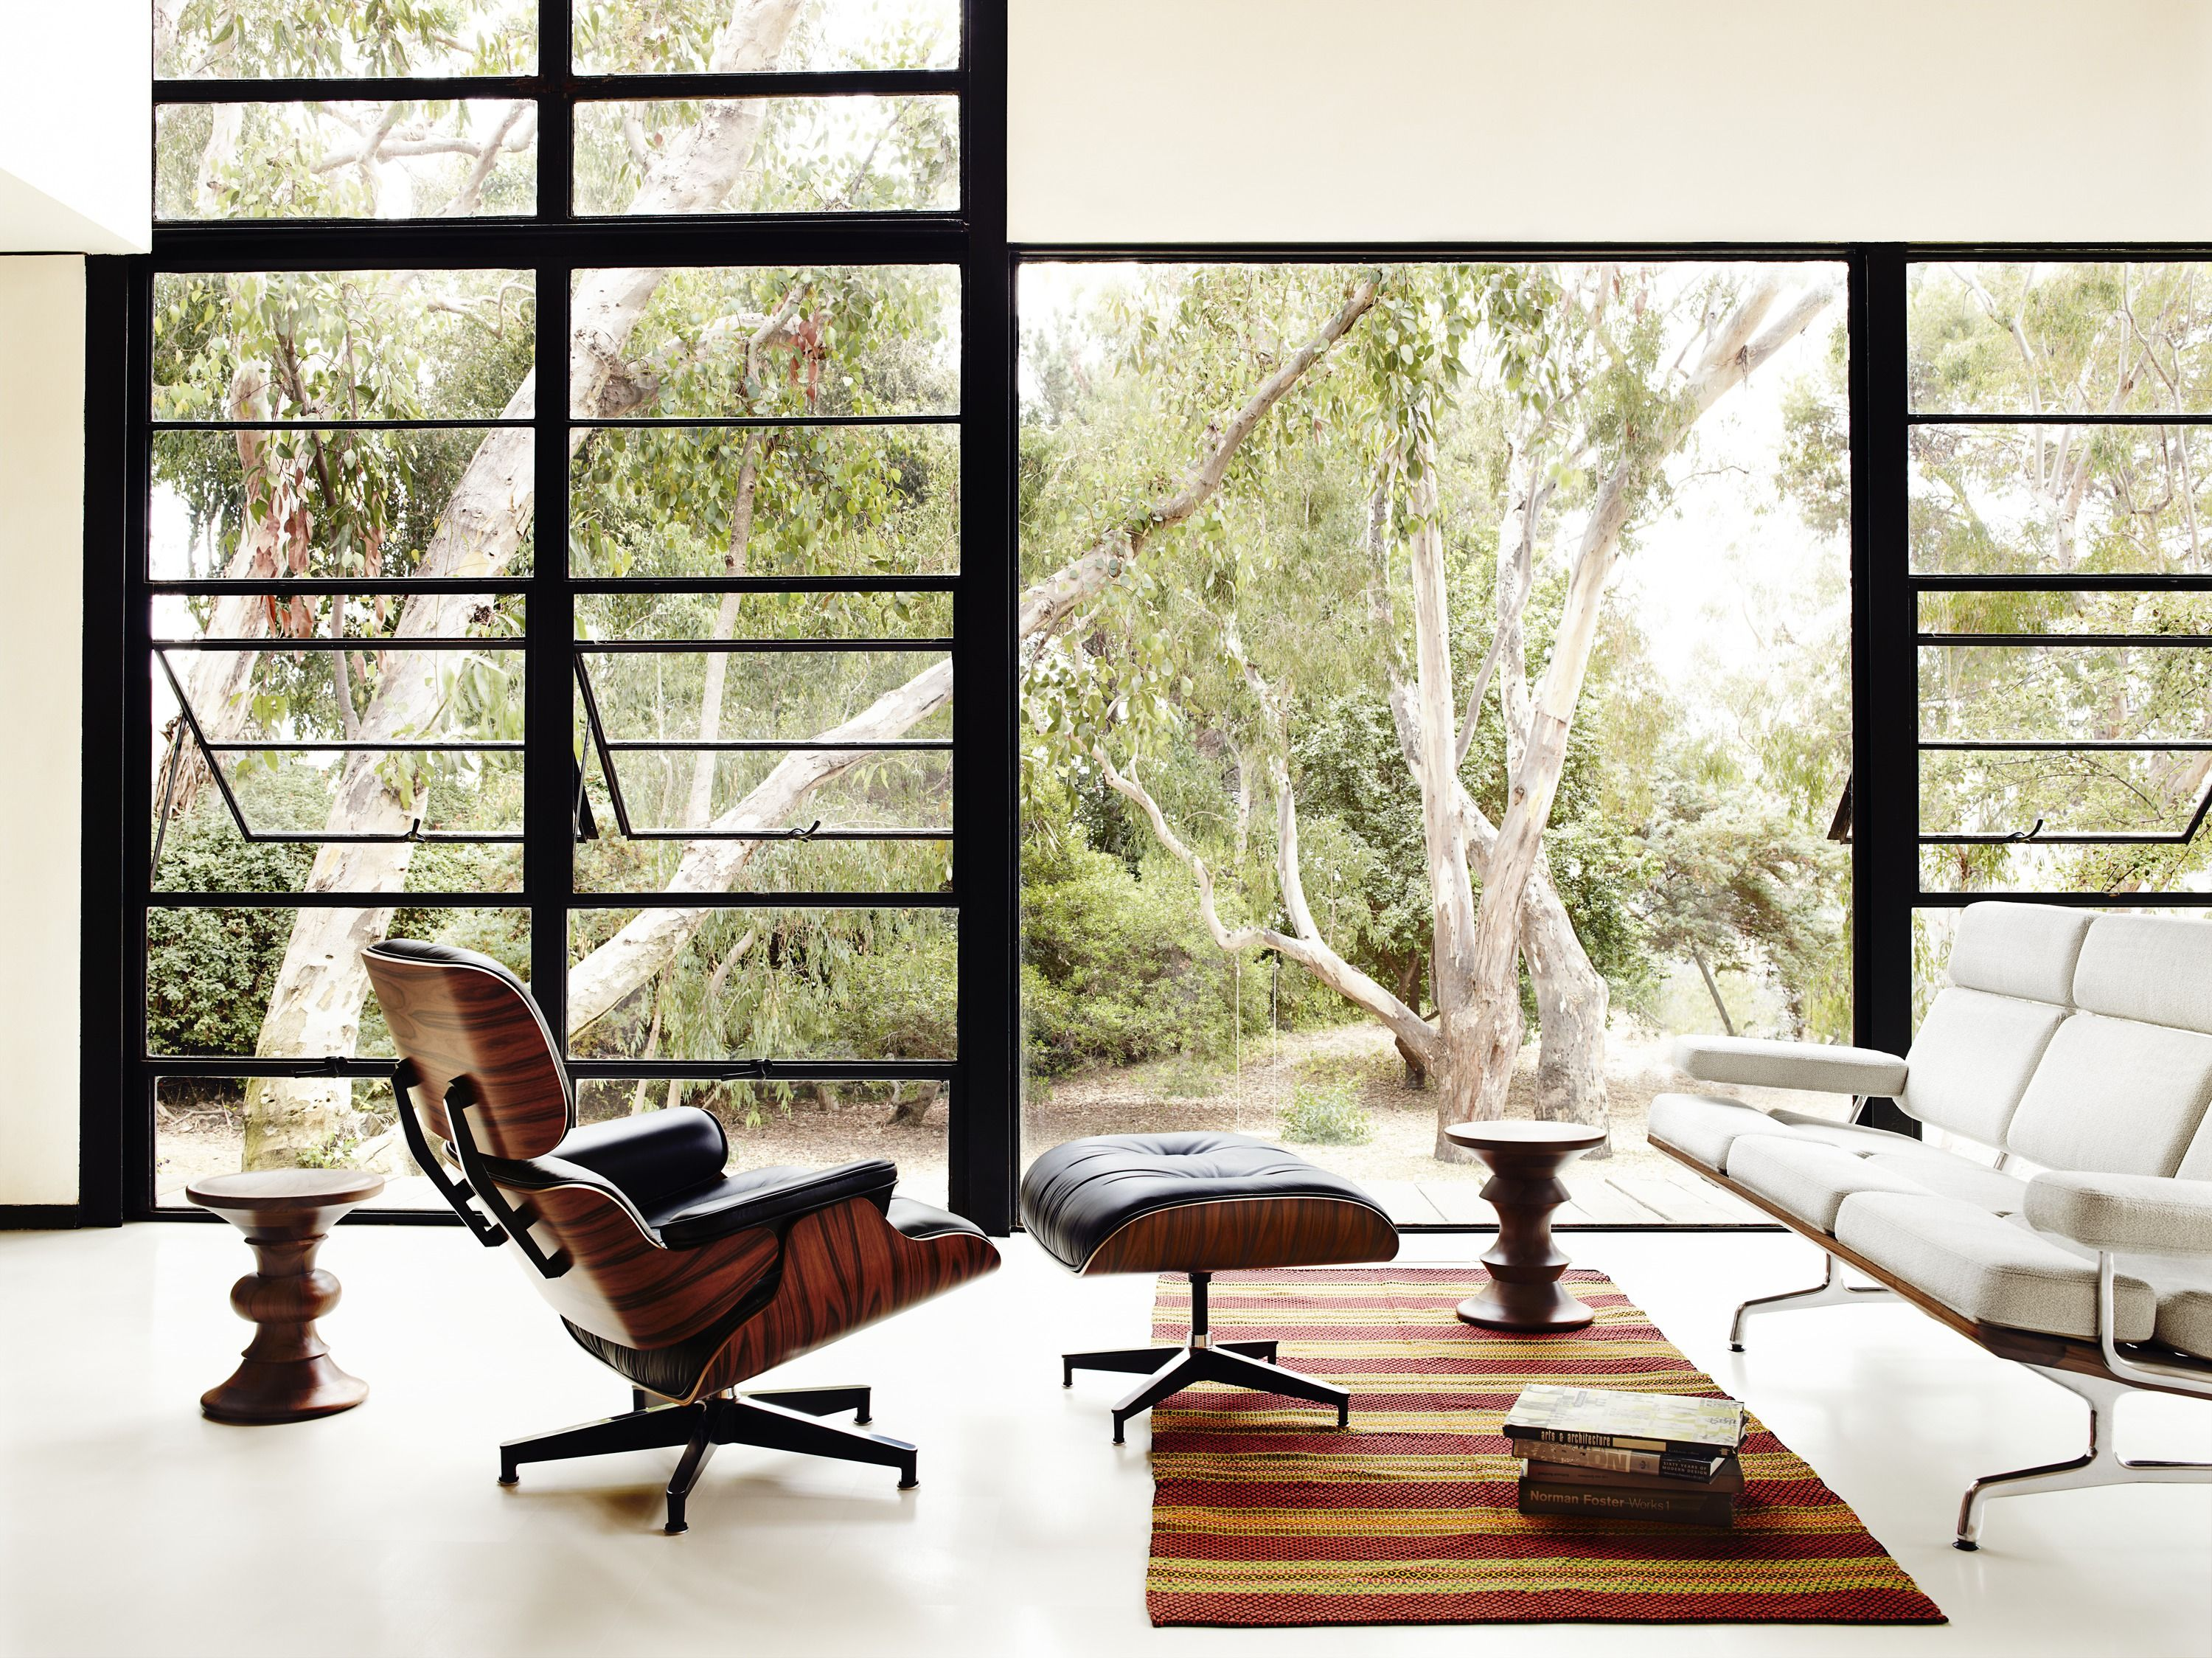 Remarkable What Is An Eames Lounge Chair Eames Lounge Chair Style Pdpeps Interior Chair Design Pdpepsorg